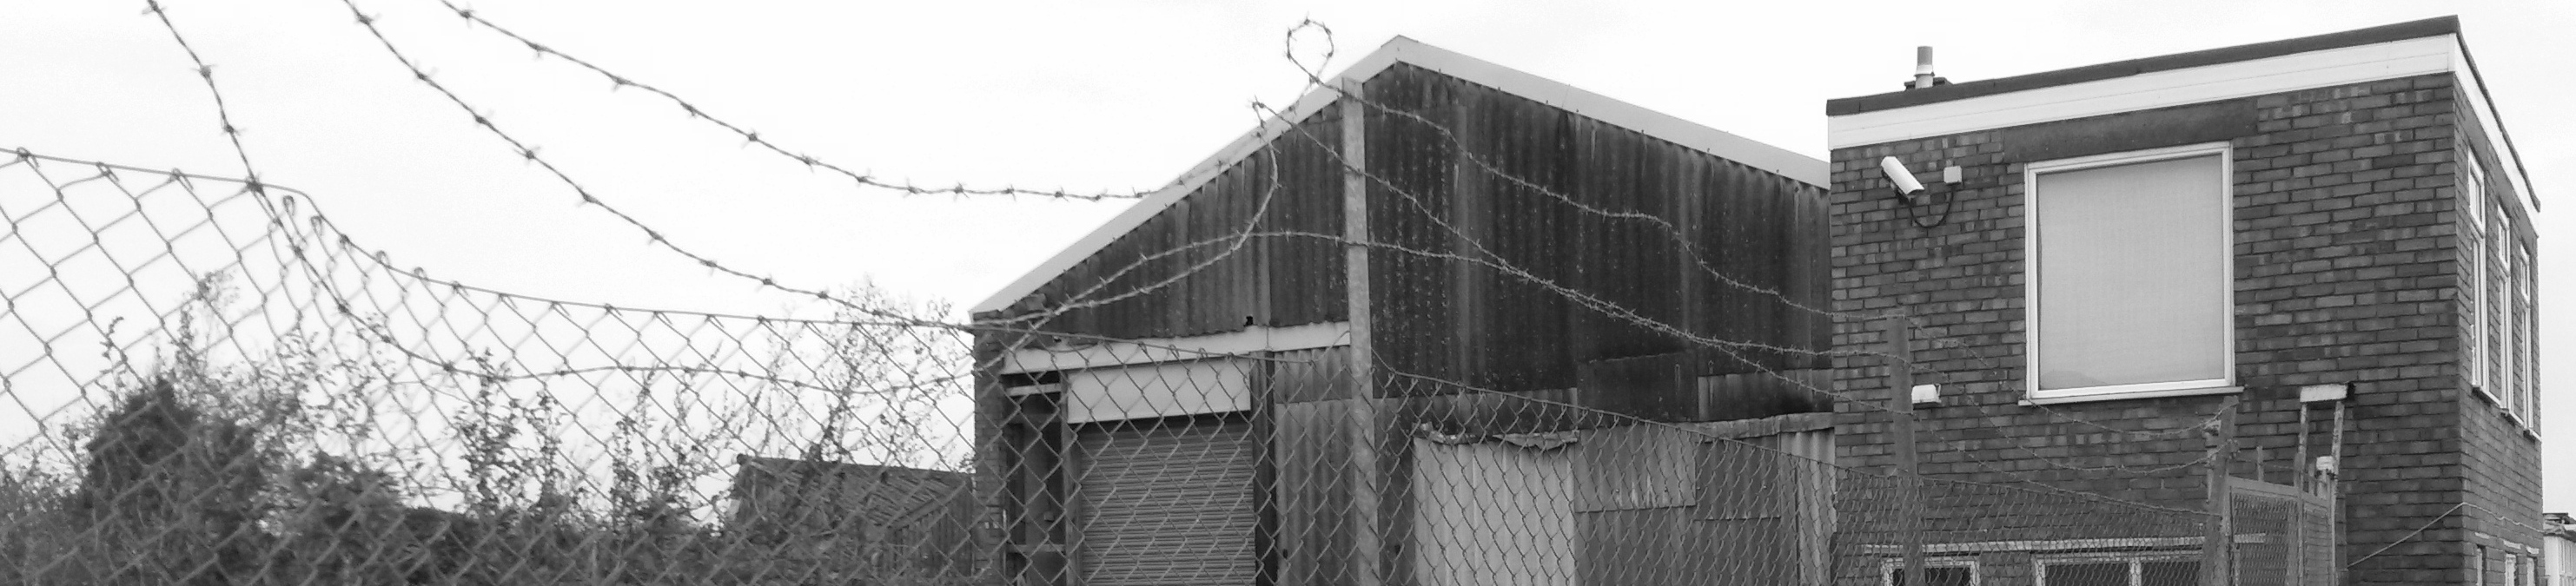 Security Industry - A building behind some security fencing